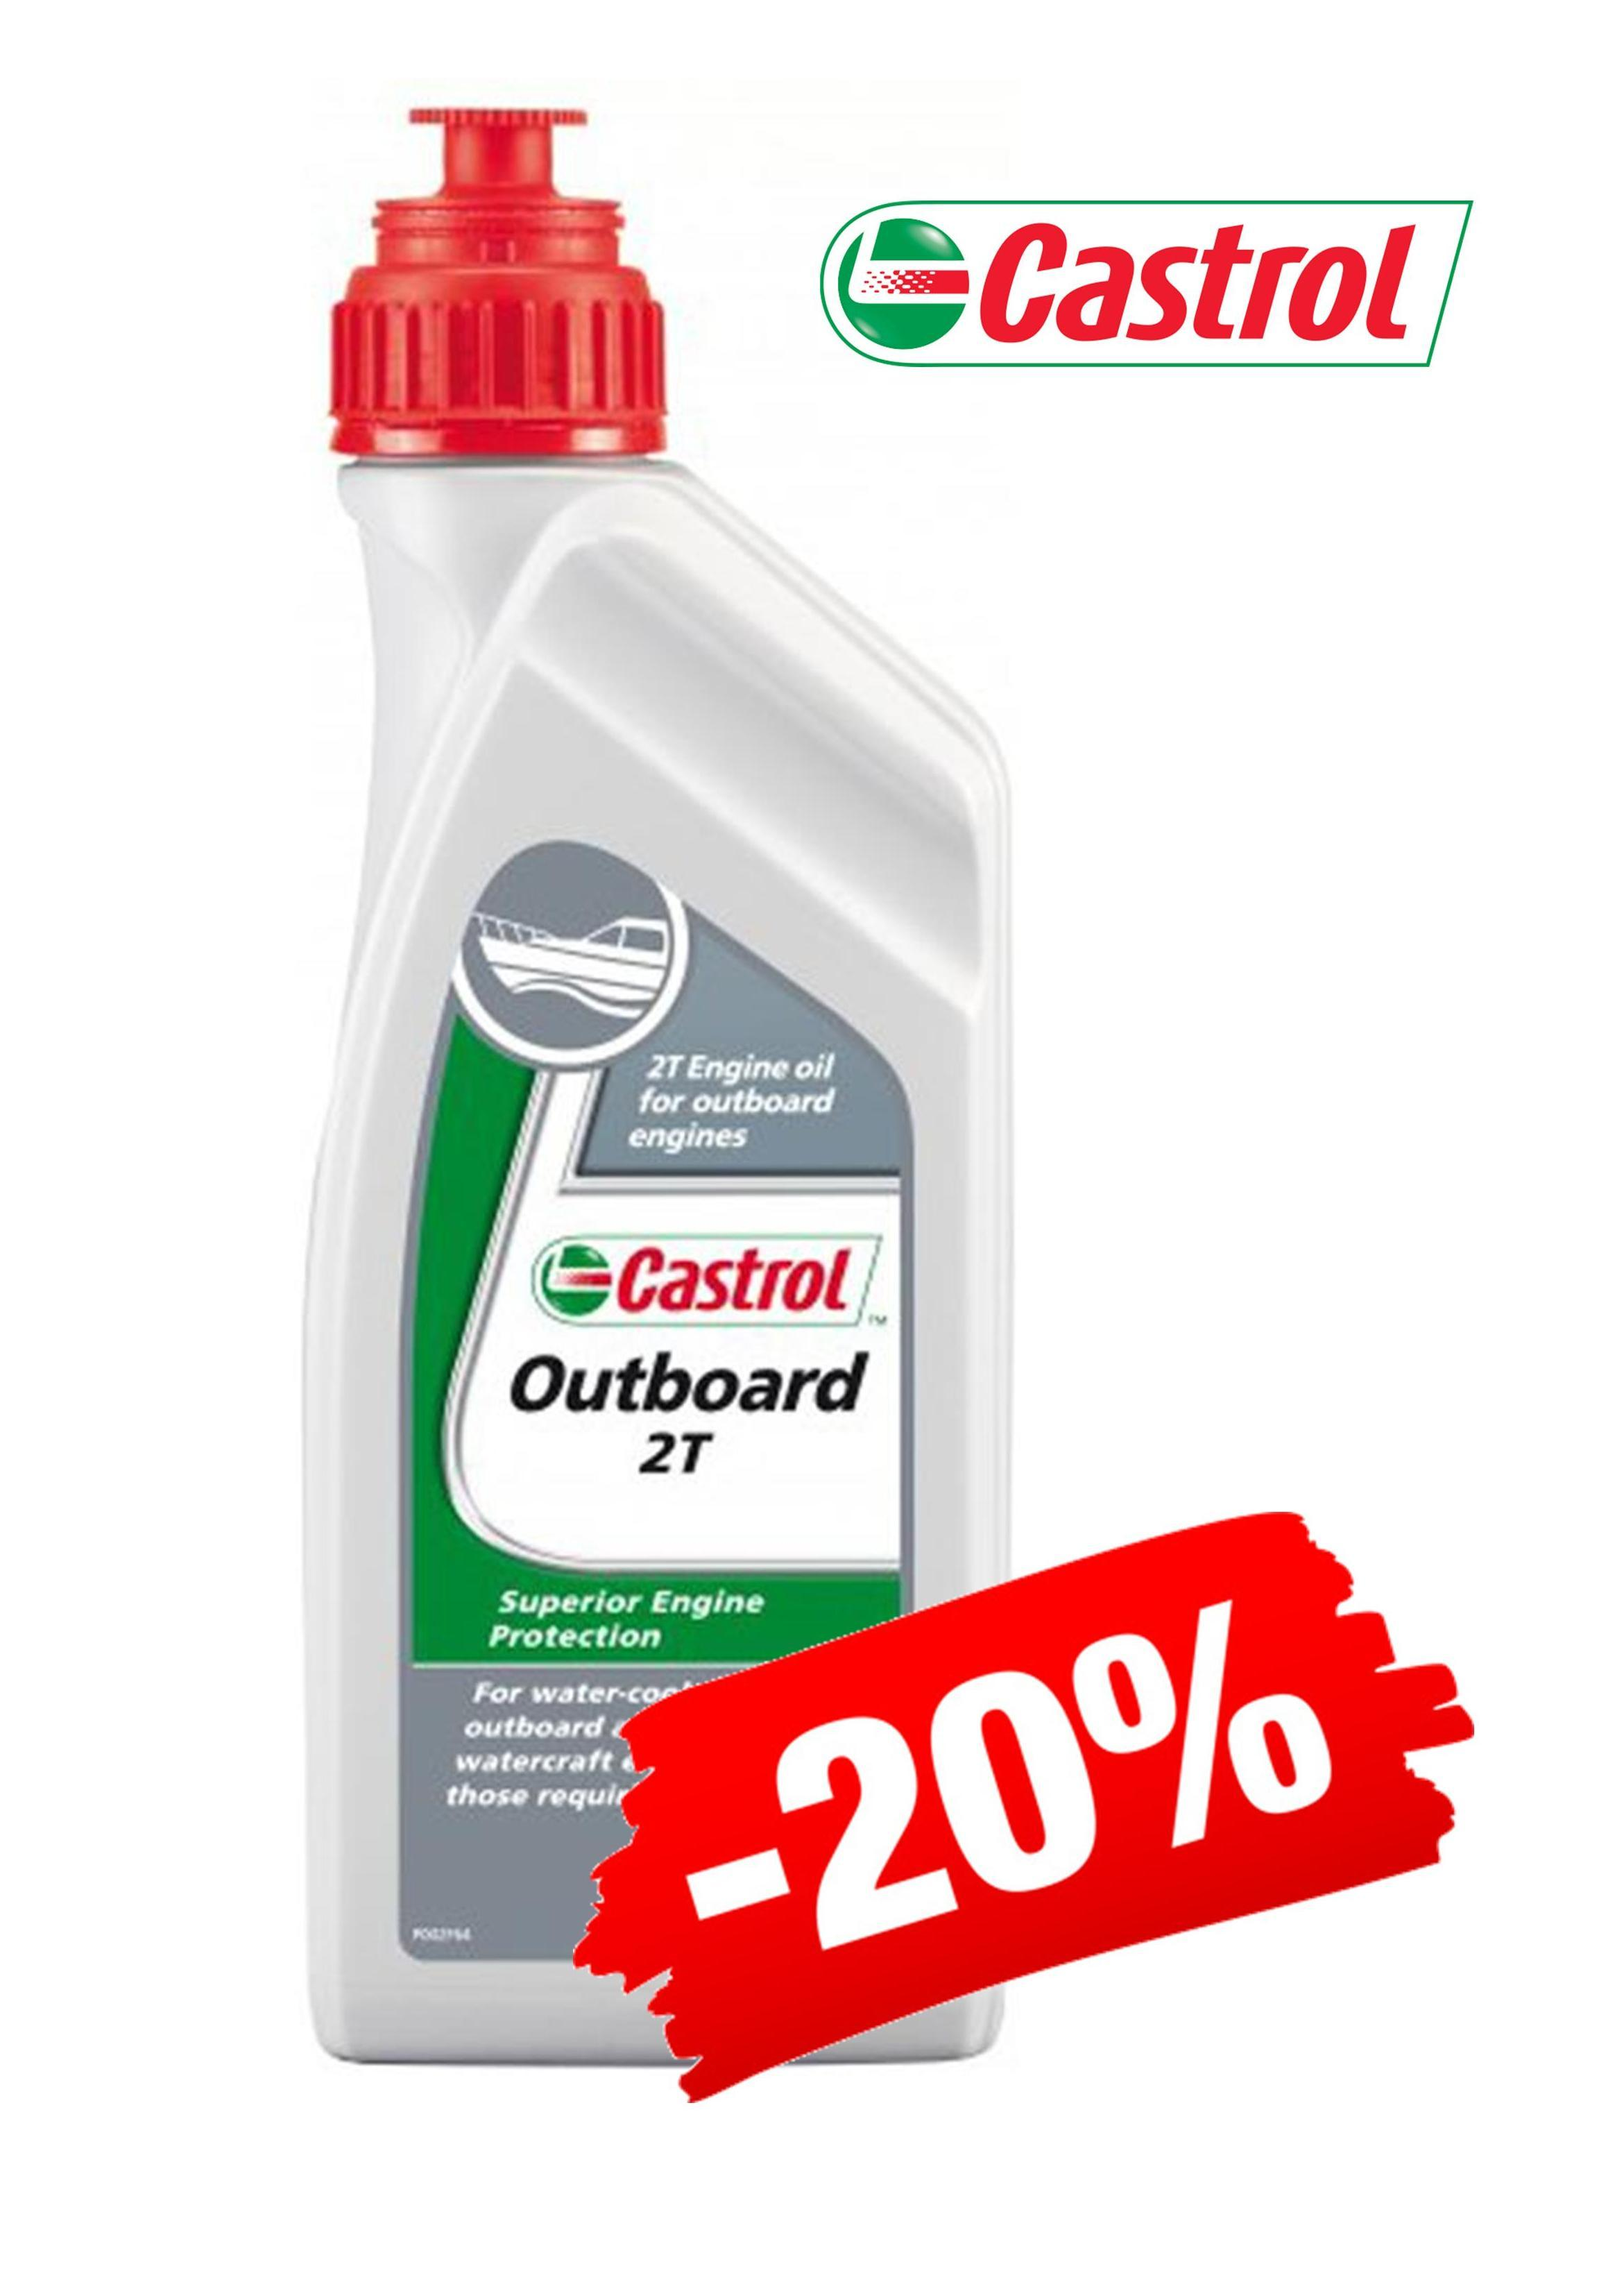 castrol_outboard_2t_-20